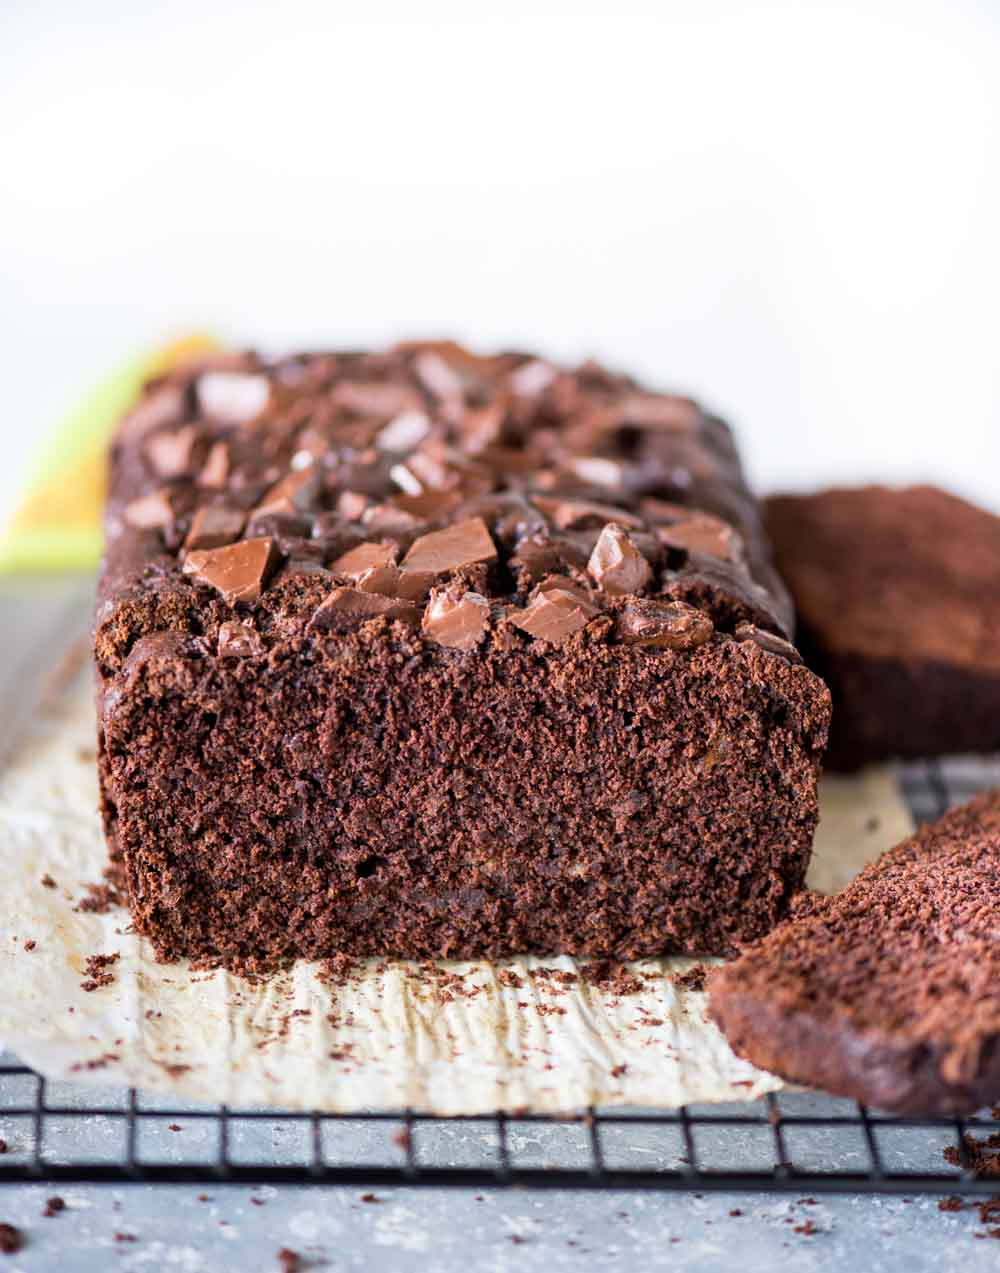 This chocolate banana bread is moist, fudgy and has the right balance of chocolate and banana flavour. With double the chocolate, every bite of this bread is such a treat.